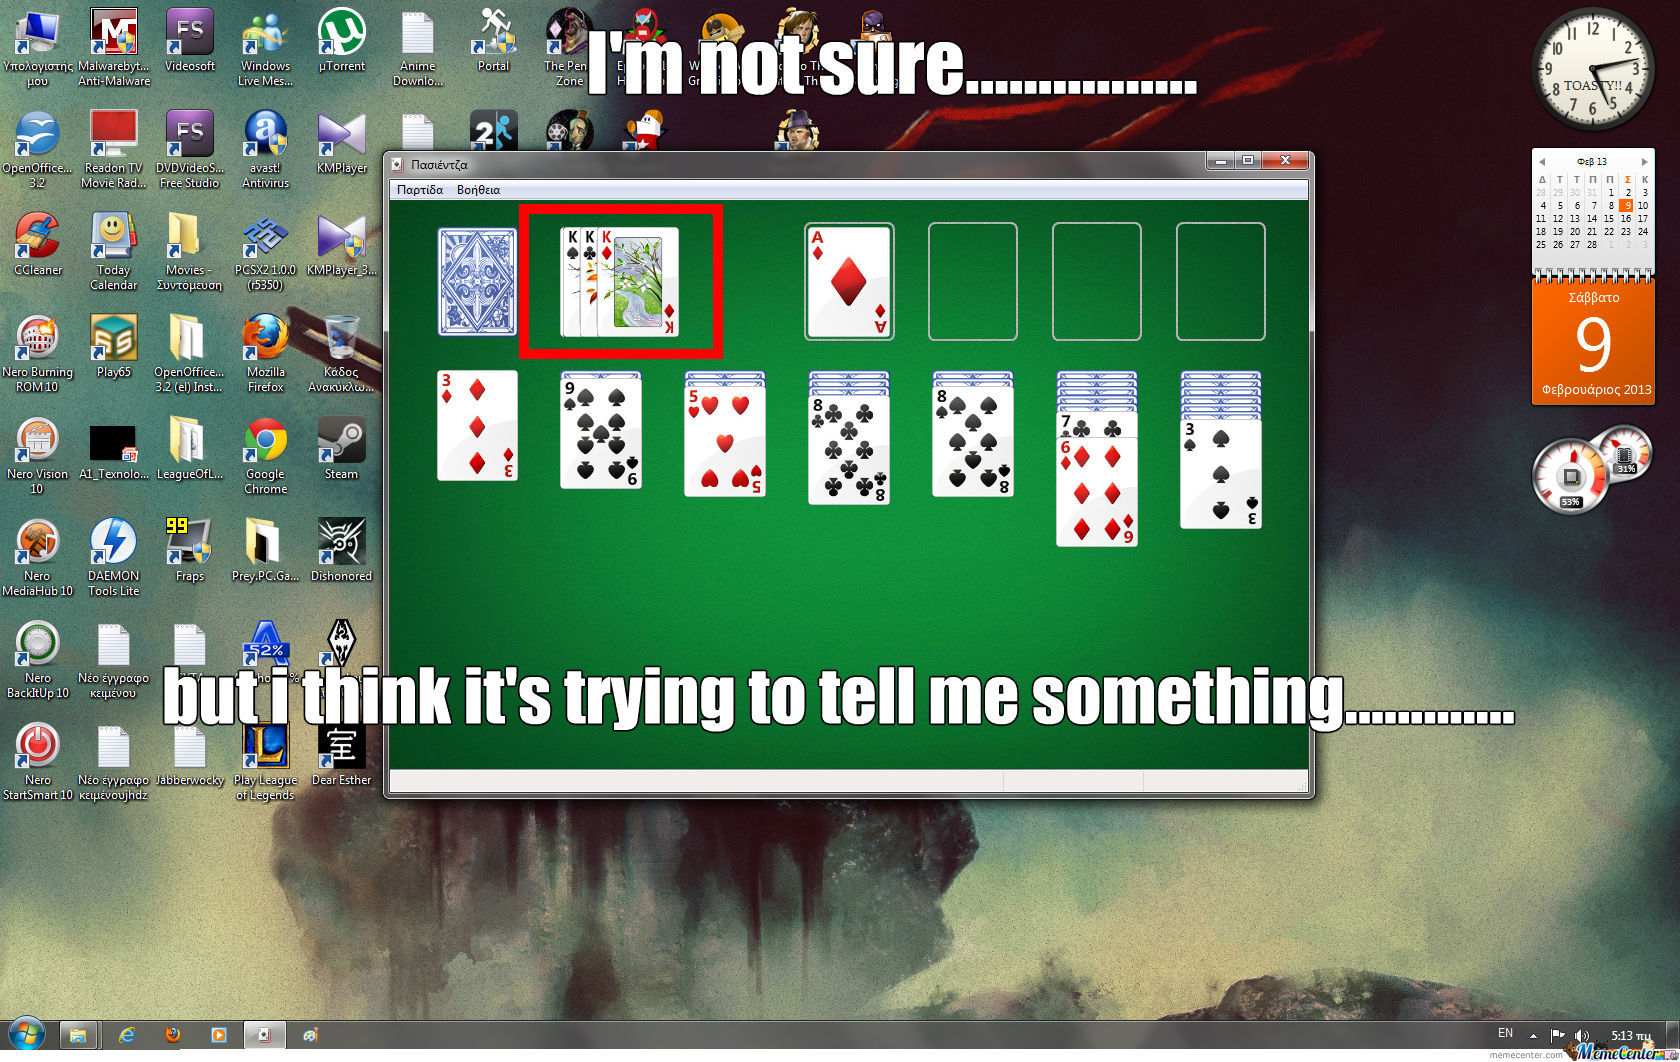 Well Done Solitaire....well Done....